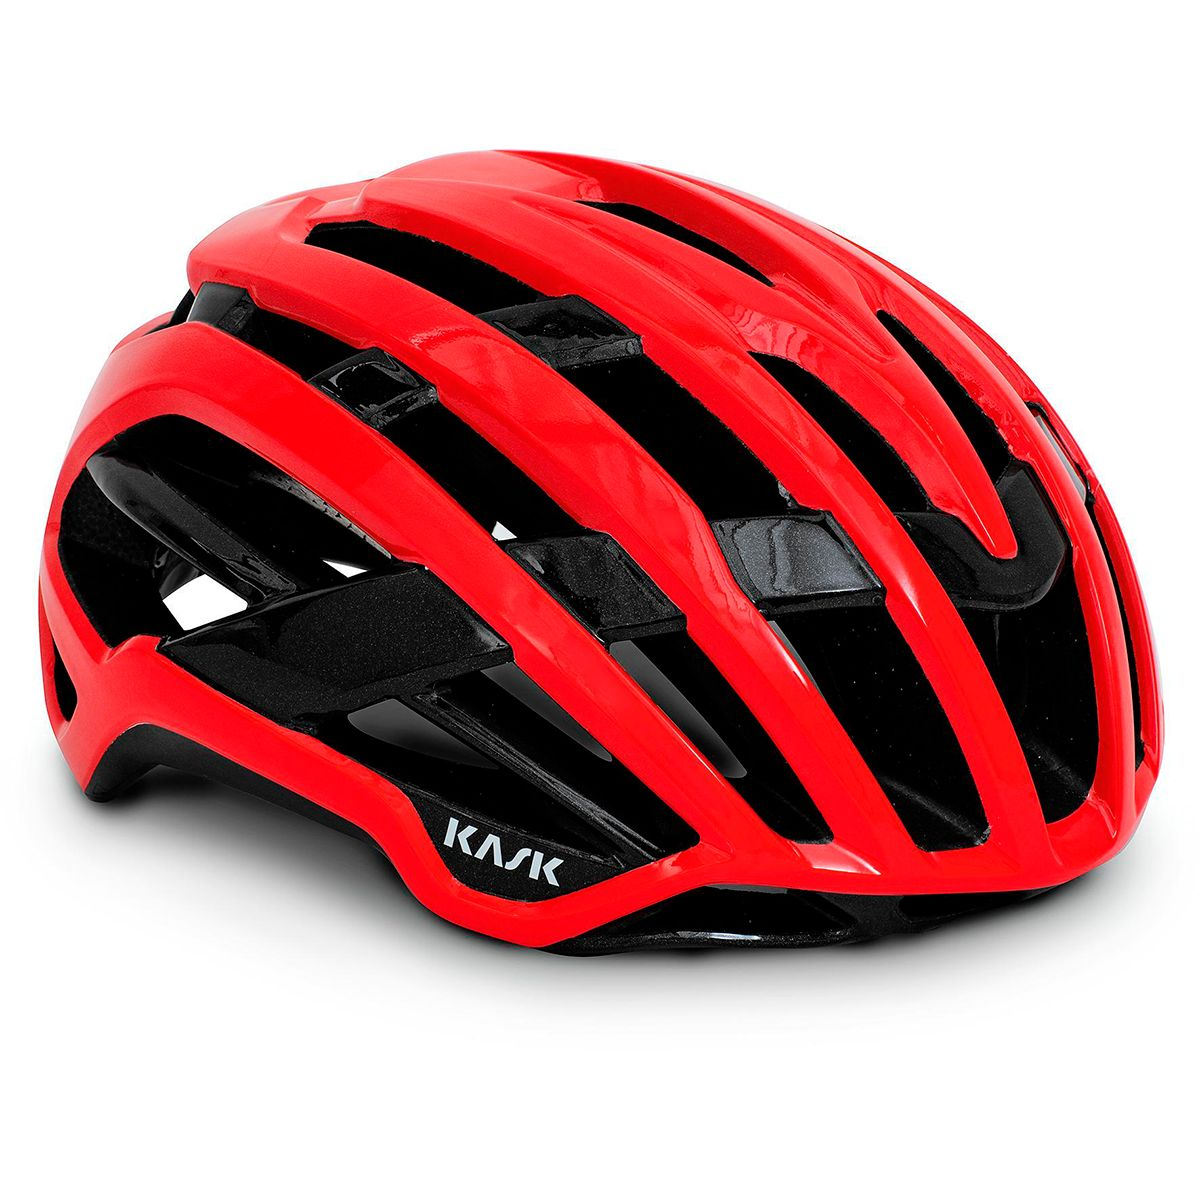 Valegro bike helmet